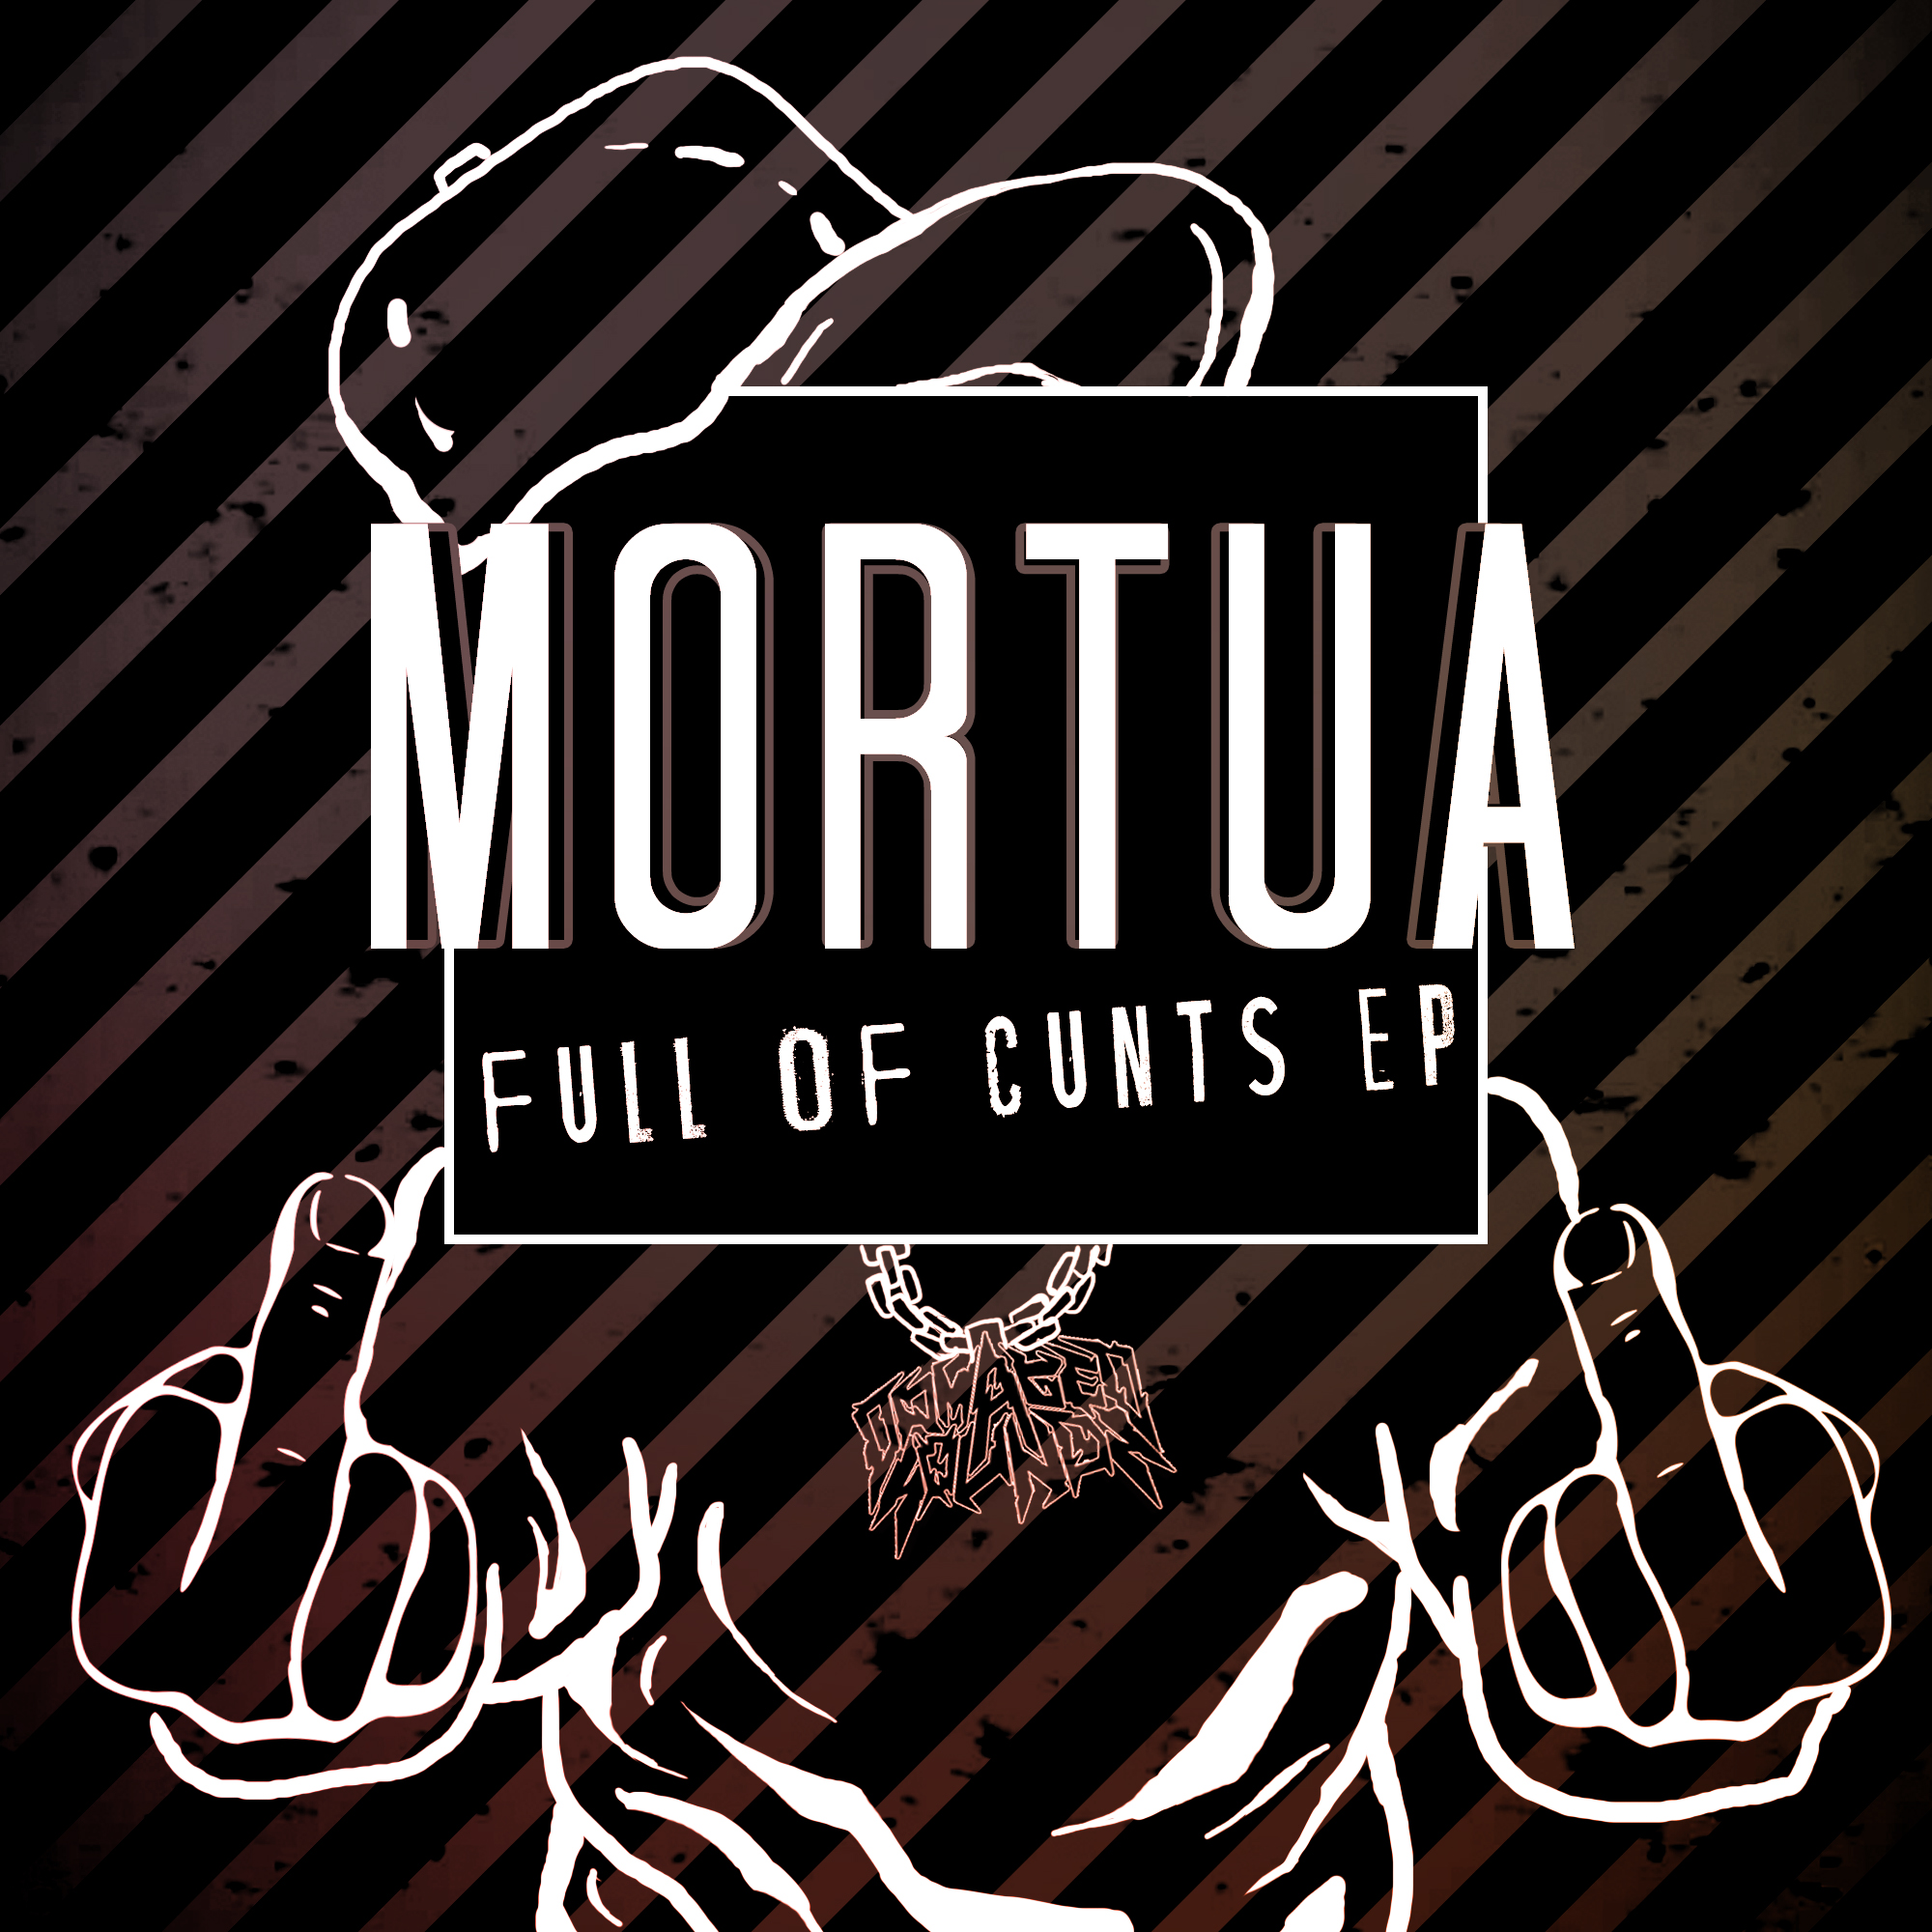 Mortua - Full of Cunts EP